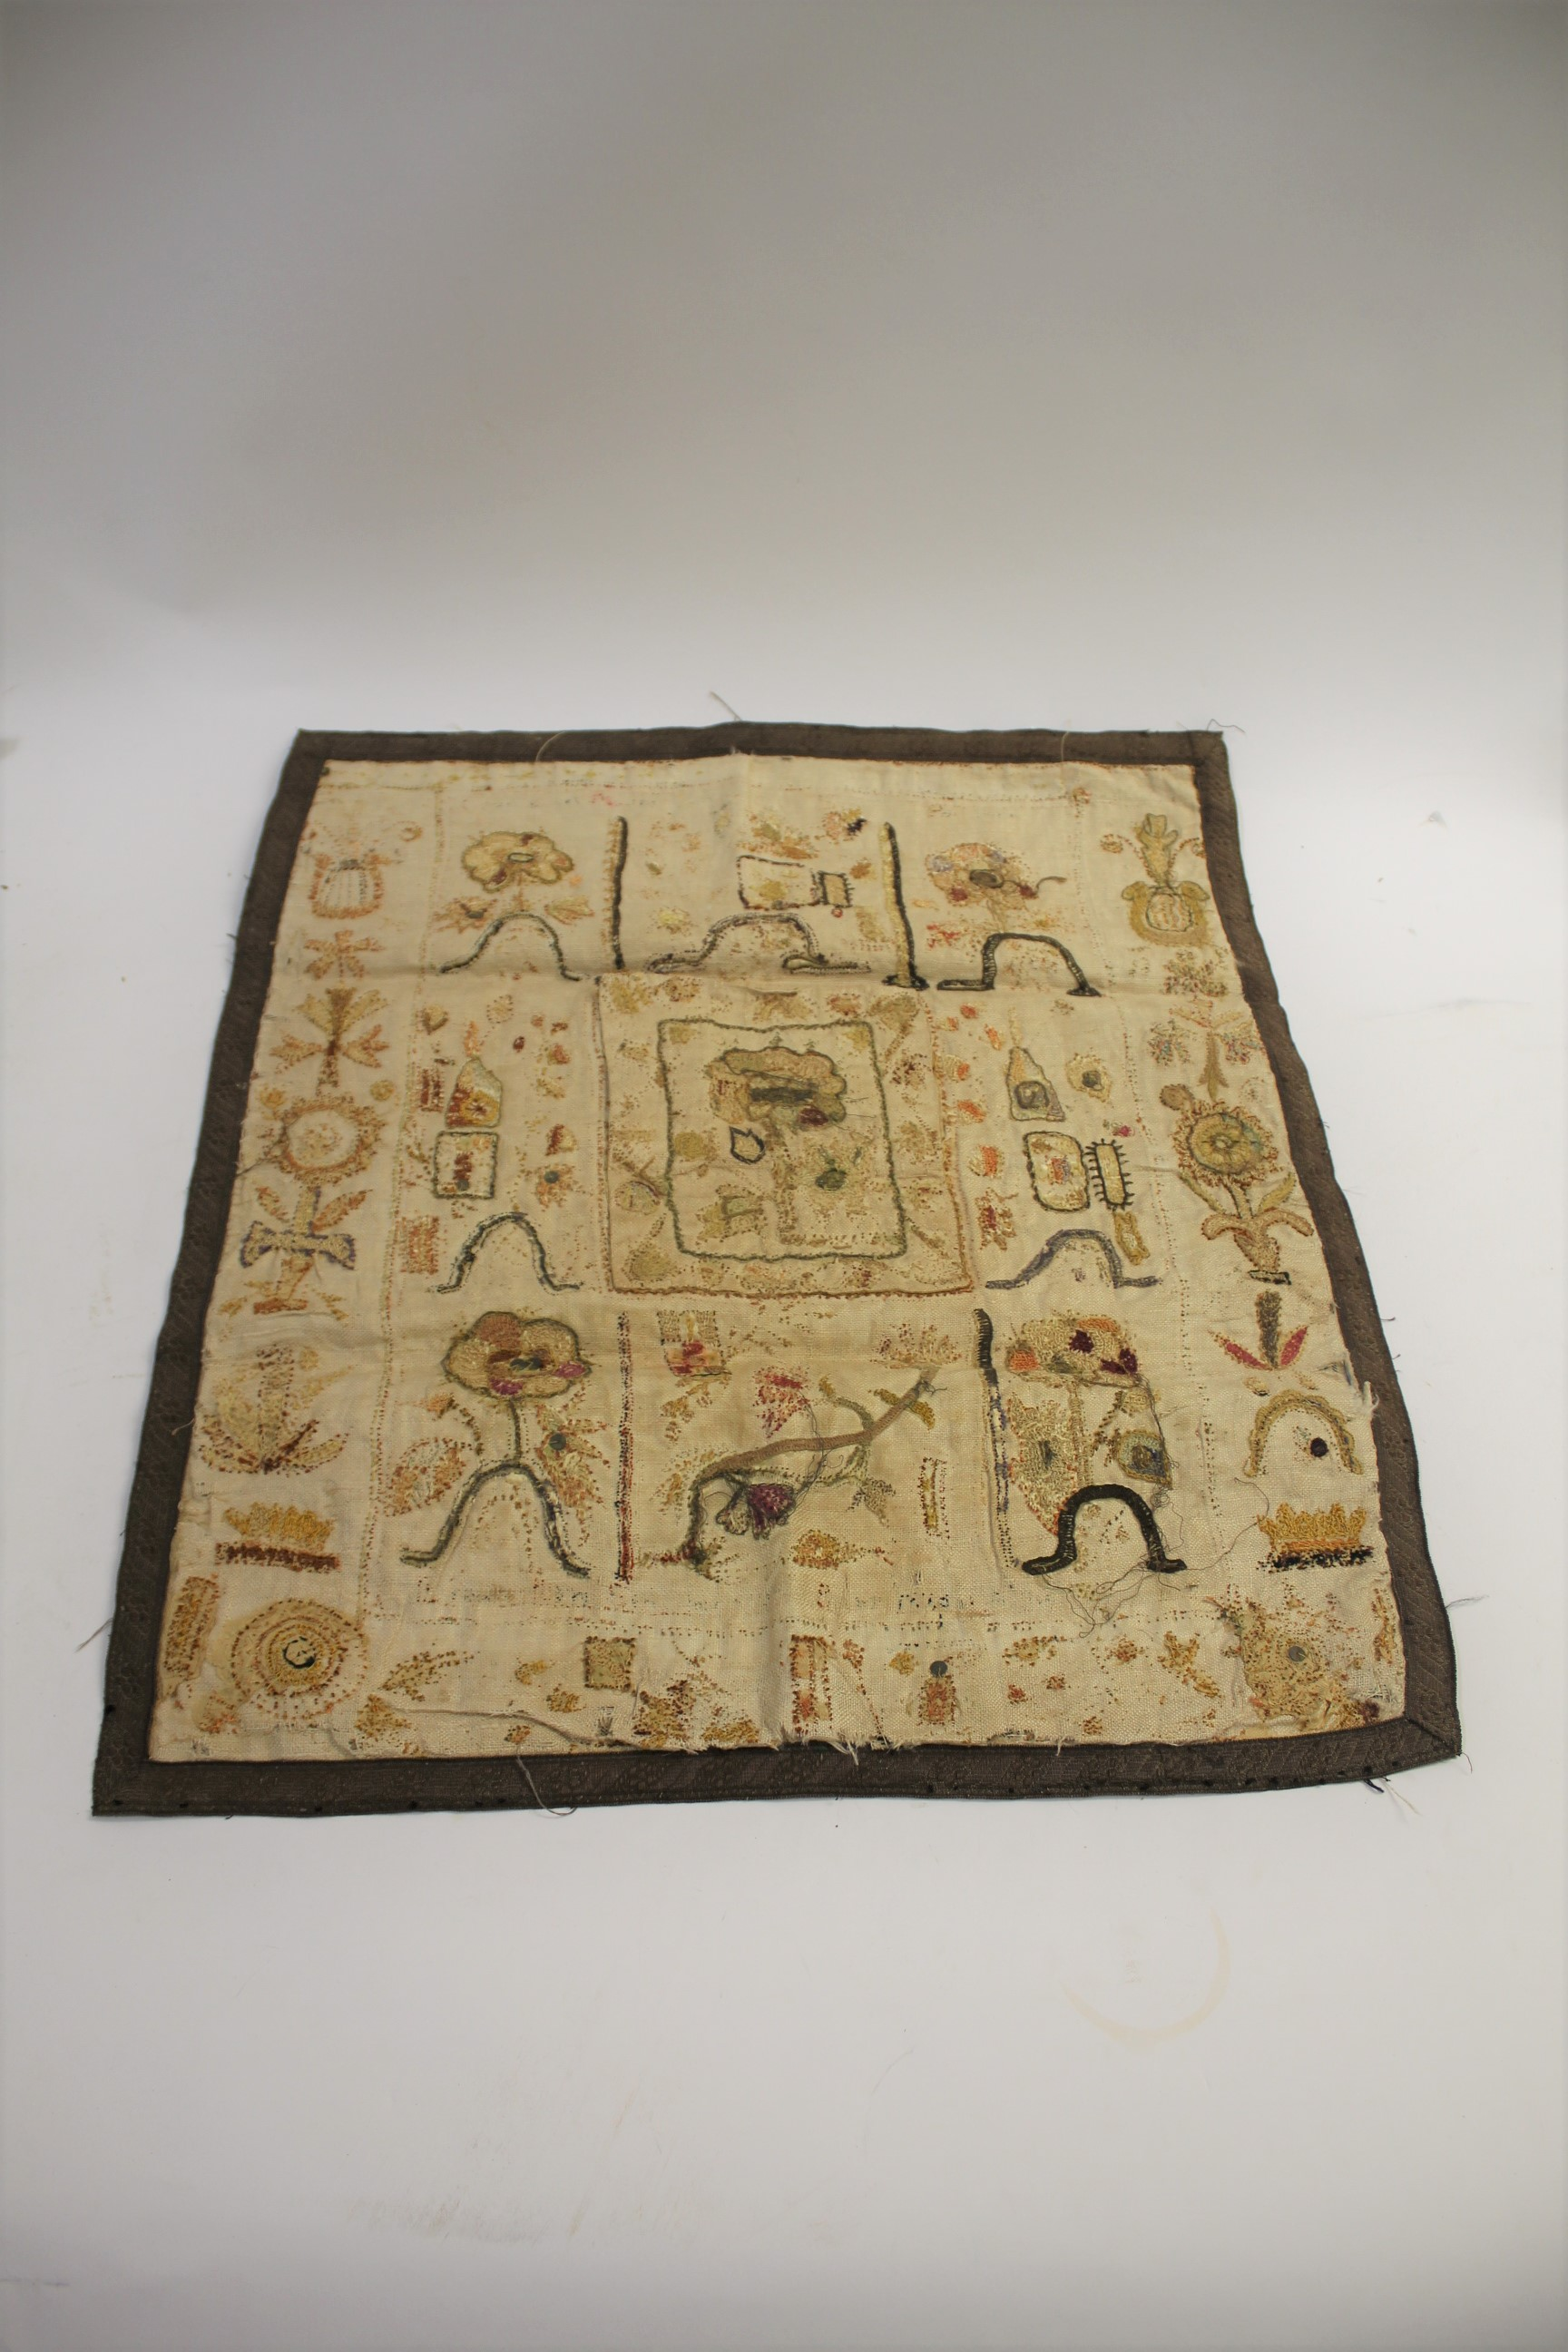 Lot 1868 - RARE 17THC SPOT SAMPLER a spot sampler onto linen with various flowers depicted, including a later